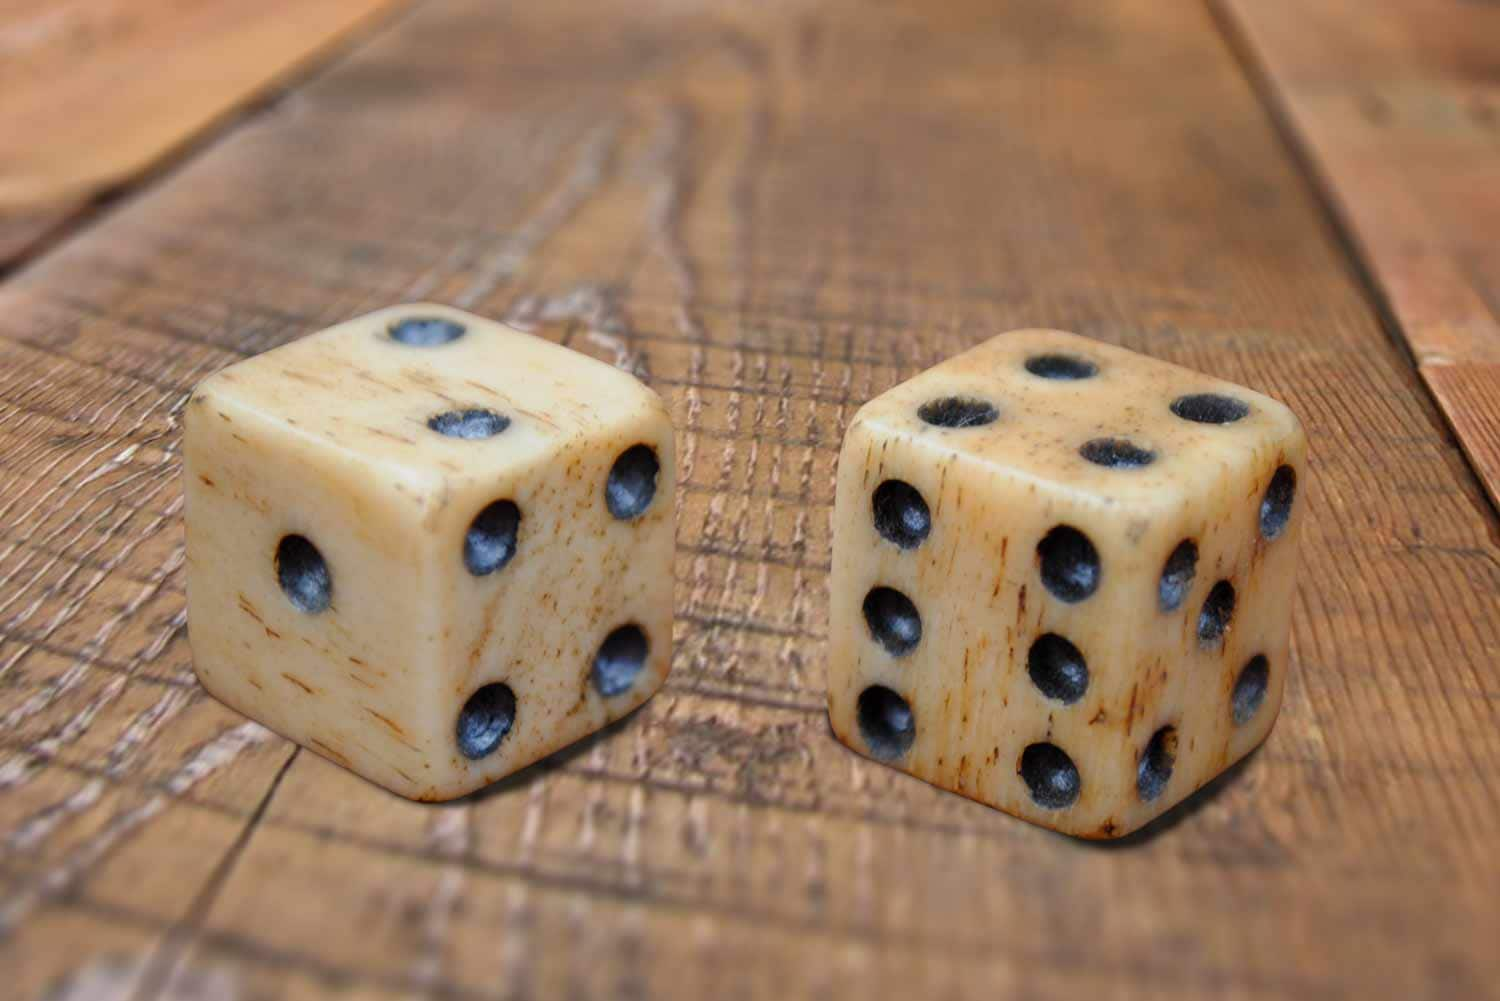 A pair of loaded dice.